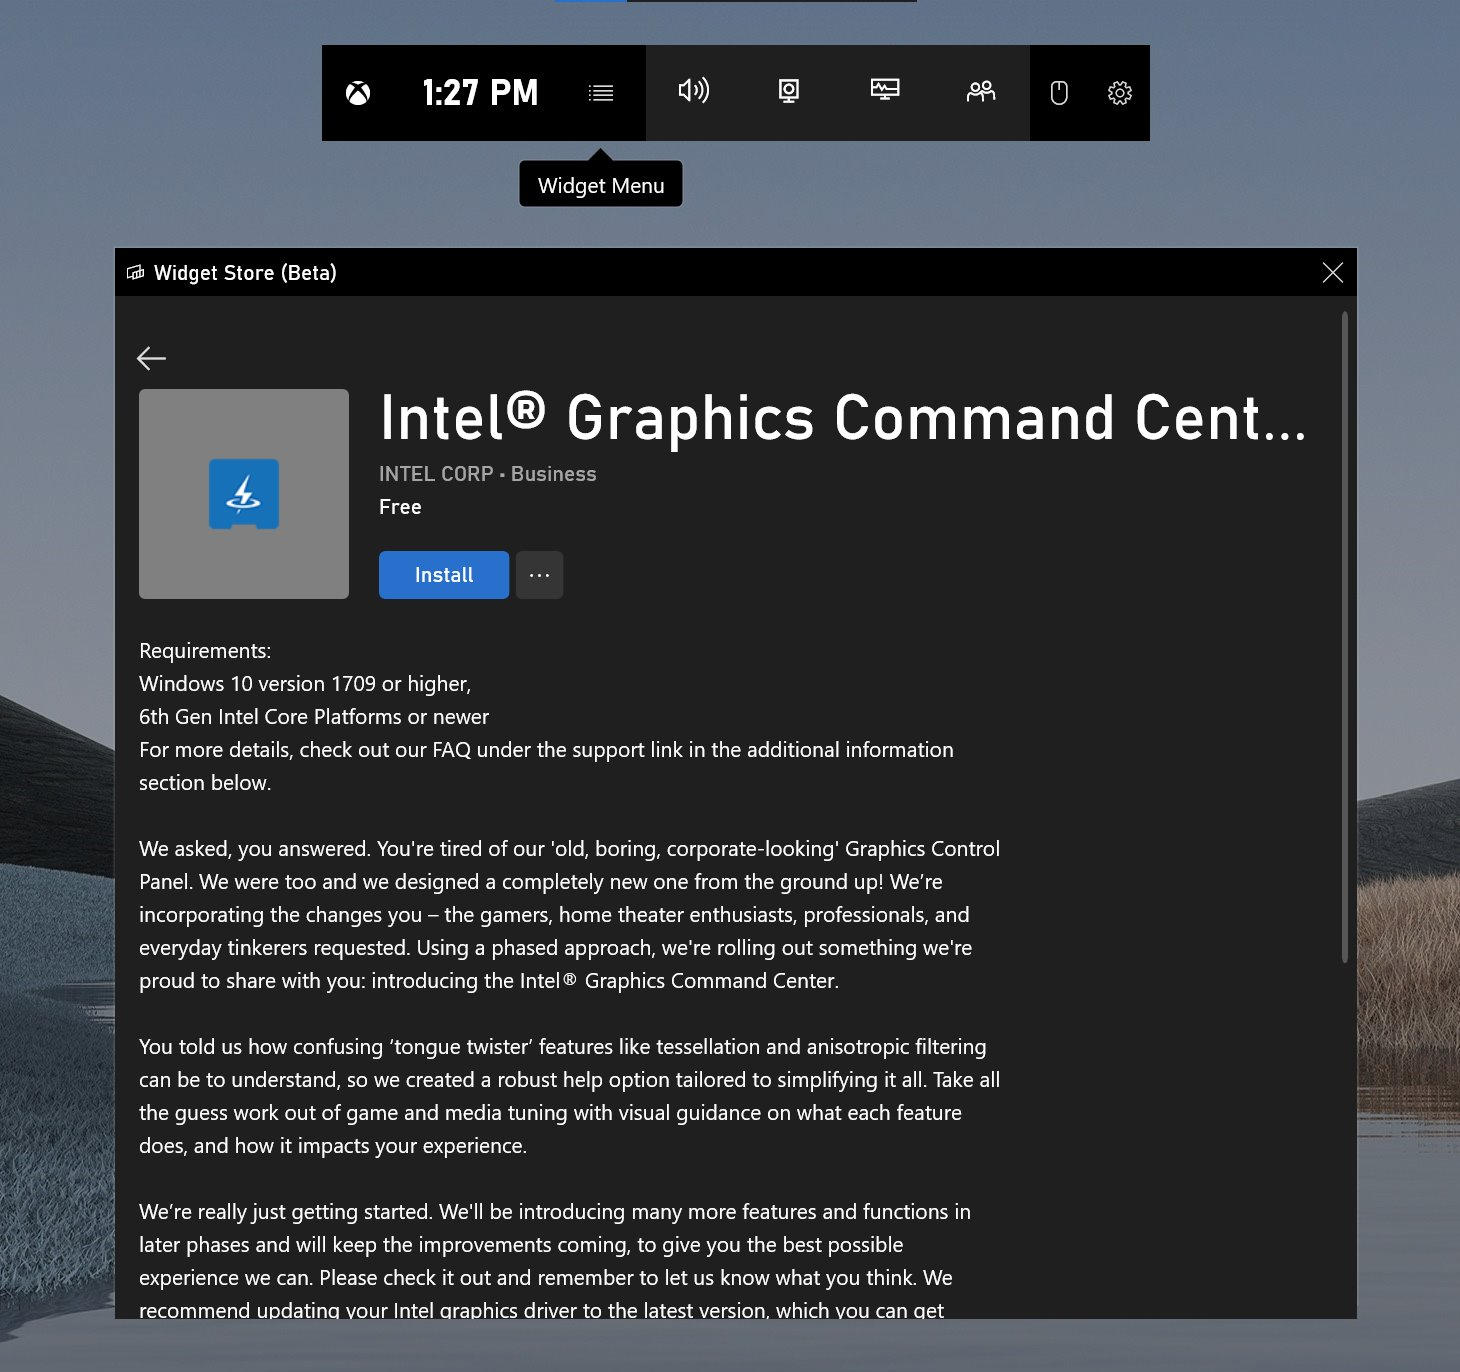 Intel® Graphics Command Center (Beta)